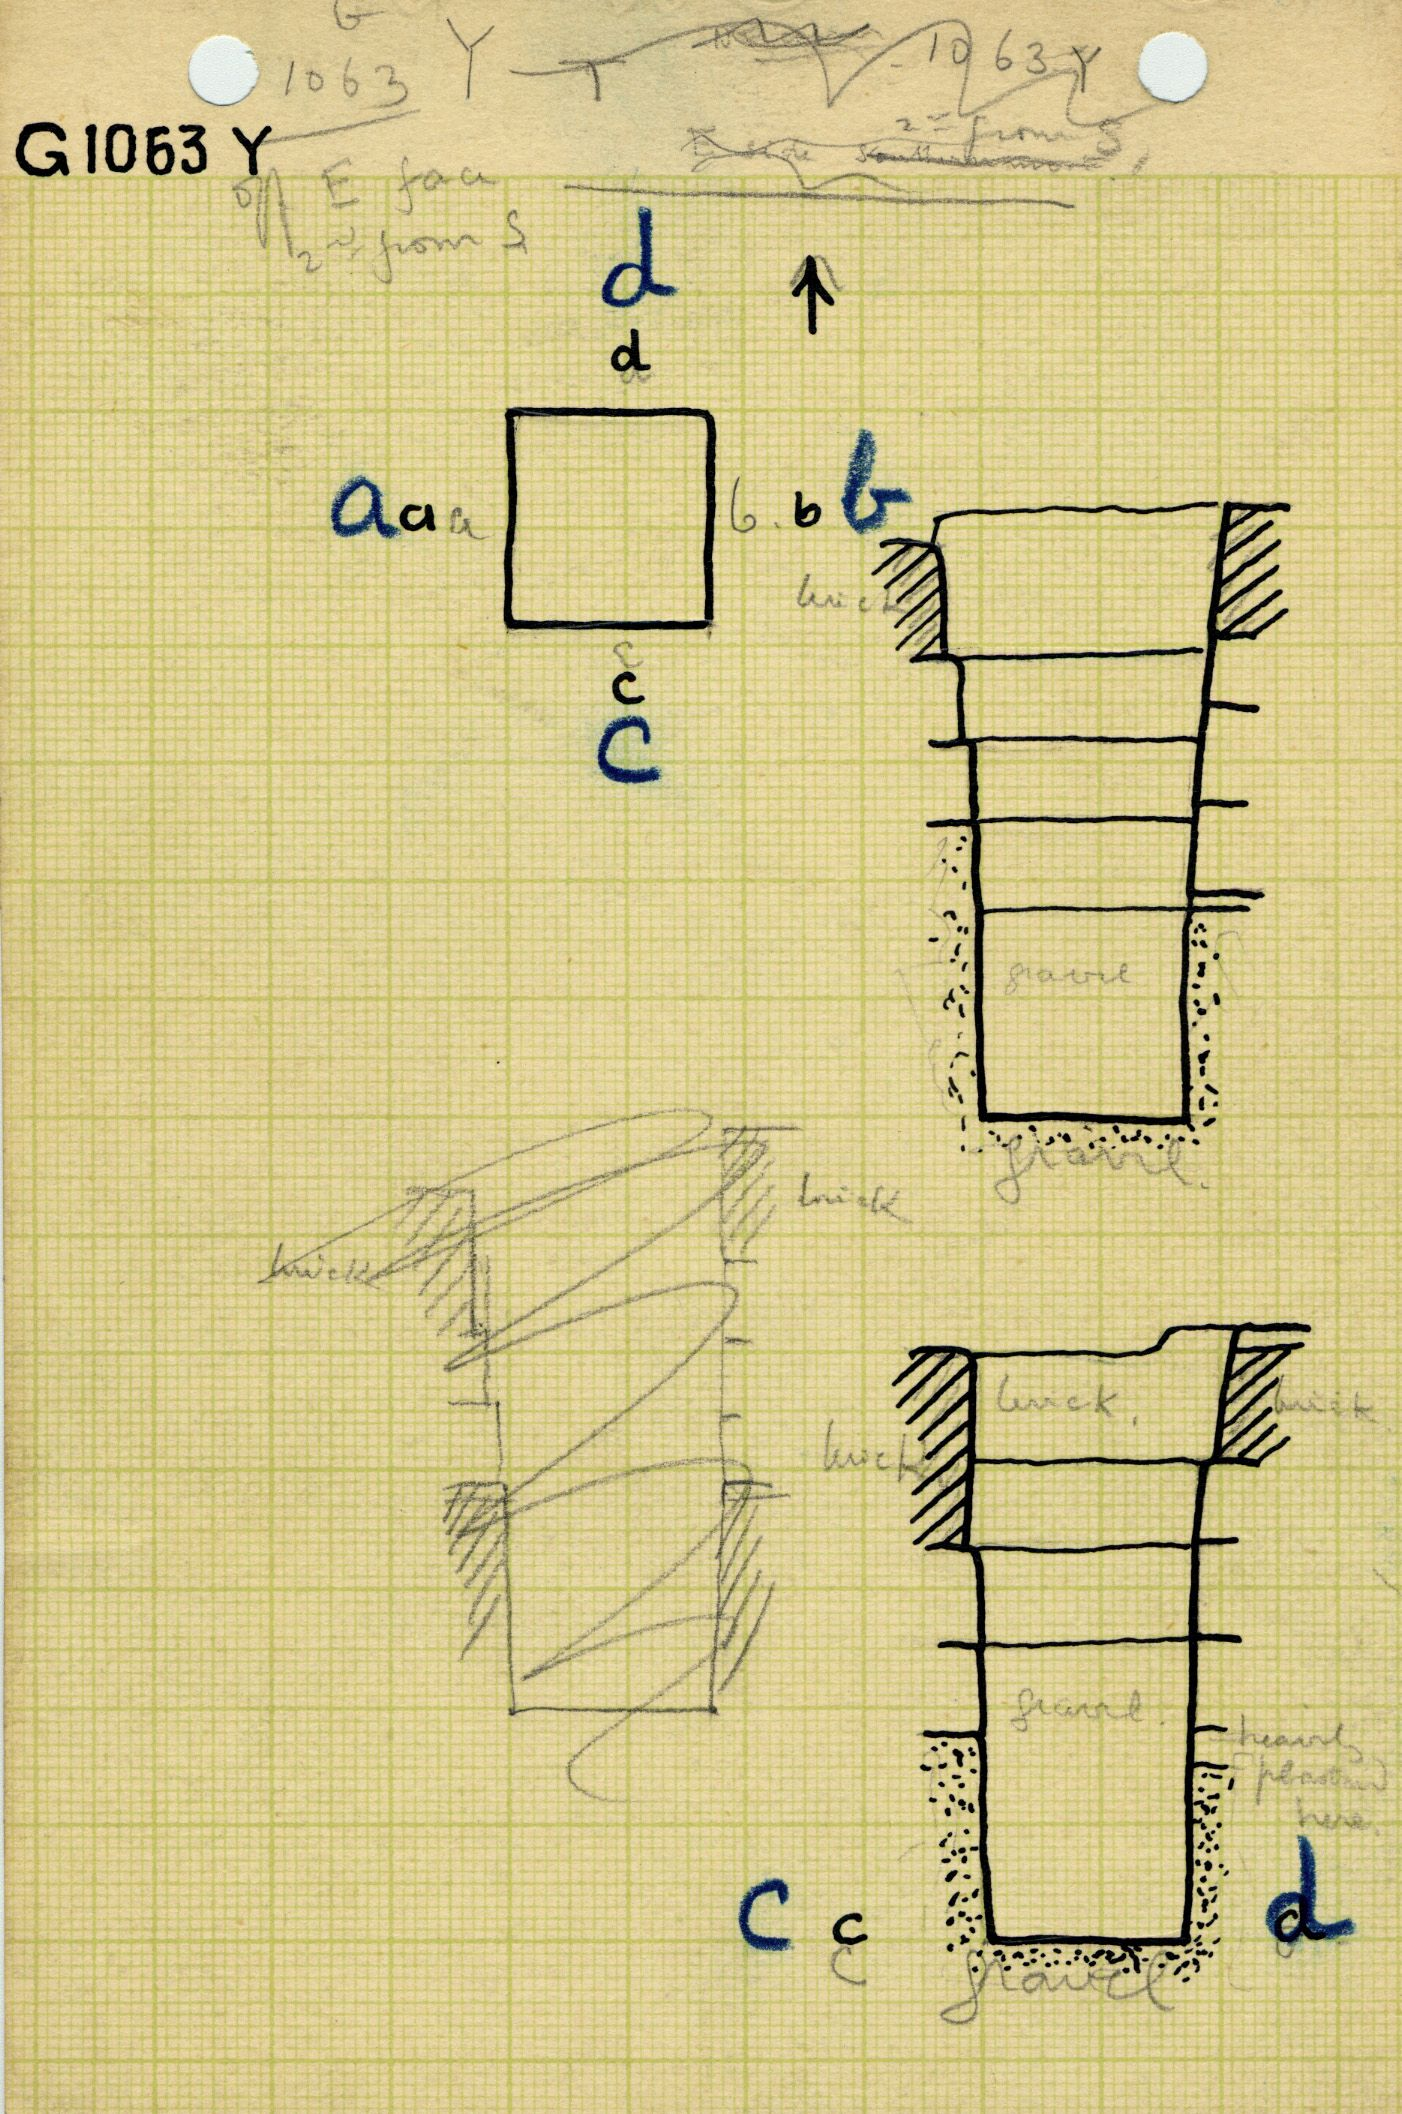 Maps and plans: G 1063, Shaft Y